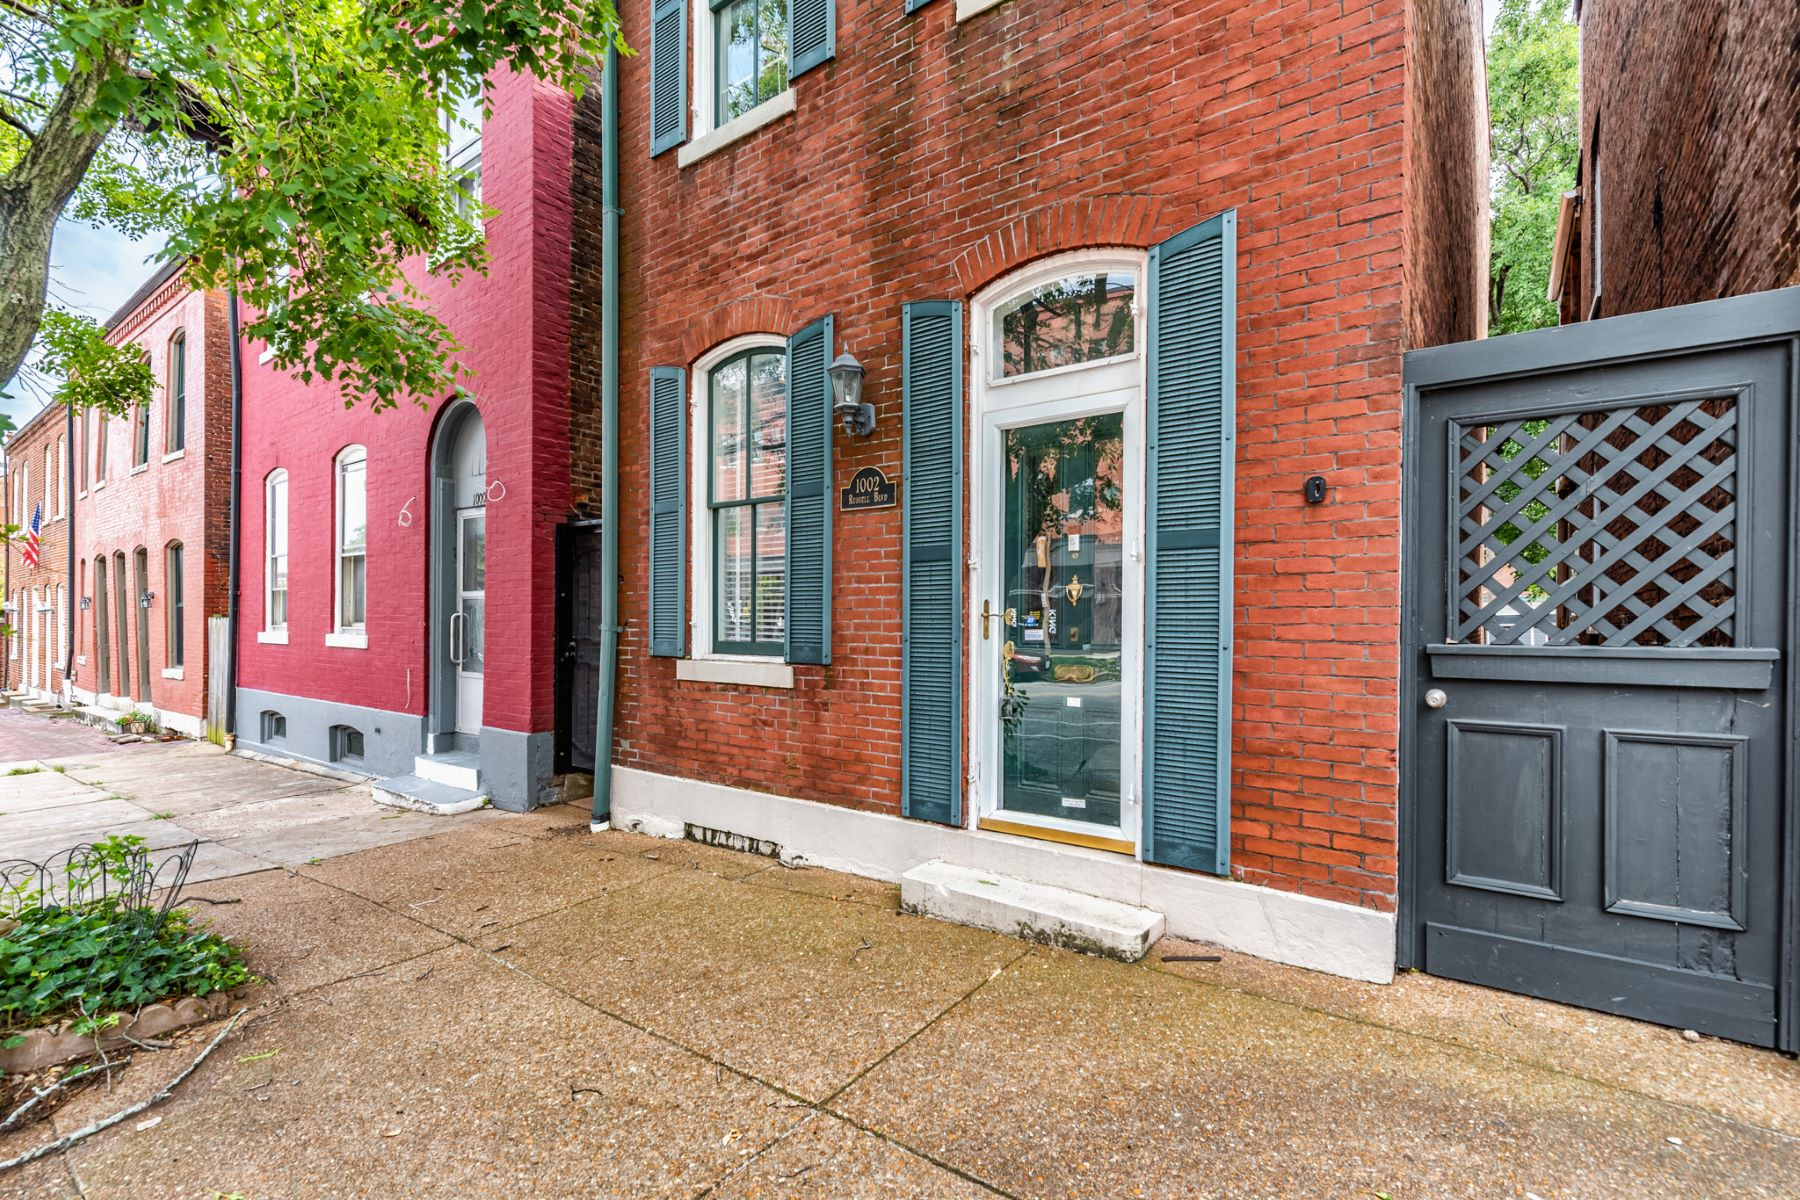 Property for Sale at Architectural Charm in the Heart of Soulard 1002 Russell Boulevard St. Louis, Missouri 63104 United States